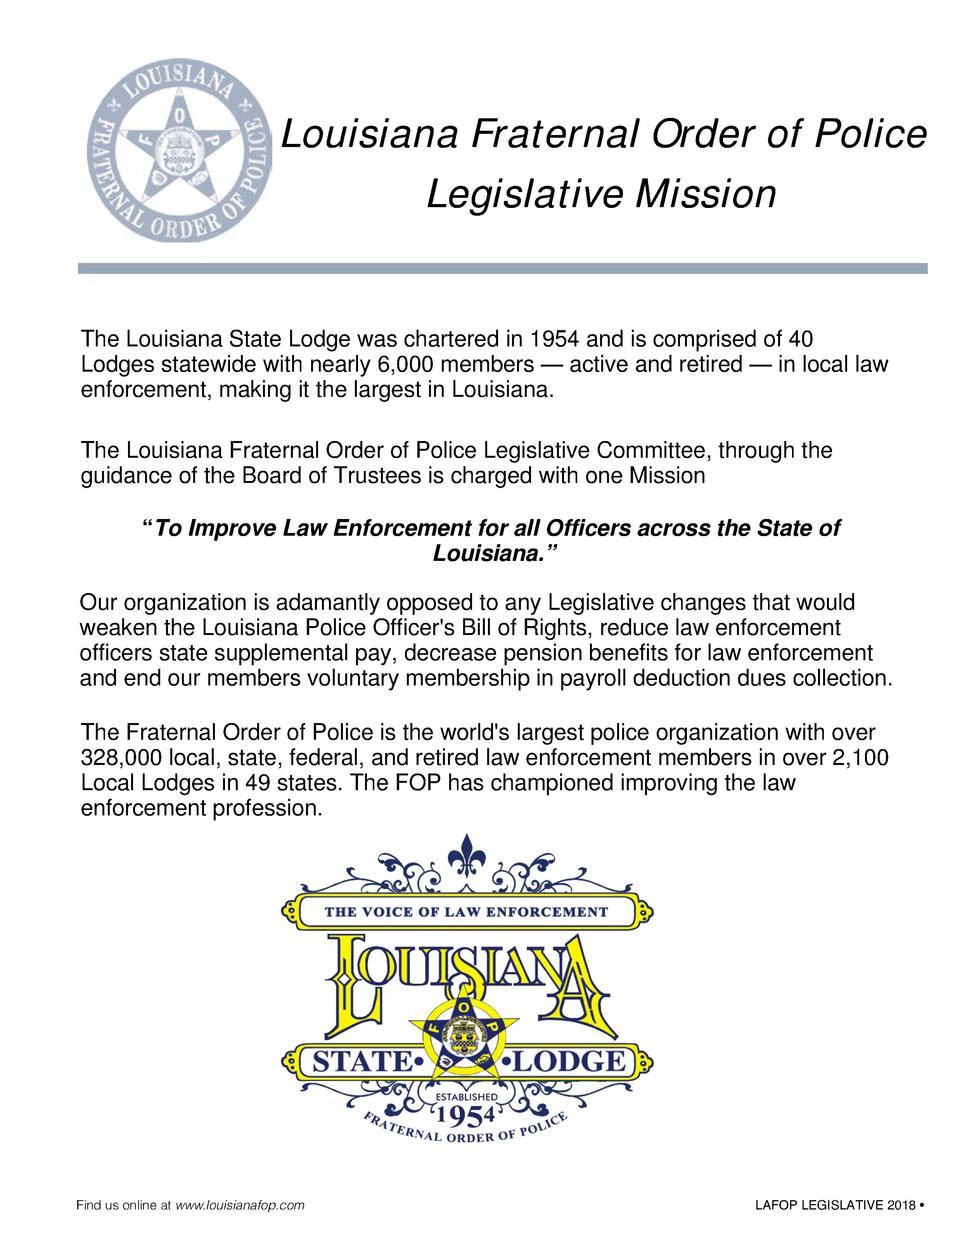 Louisiana Fraternal Order of Police Legislative Mission  The Louisiana State Lodge was chartered in 1954 and is comprised ...